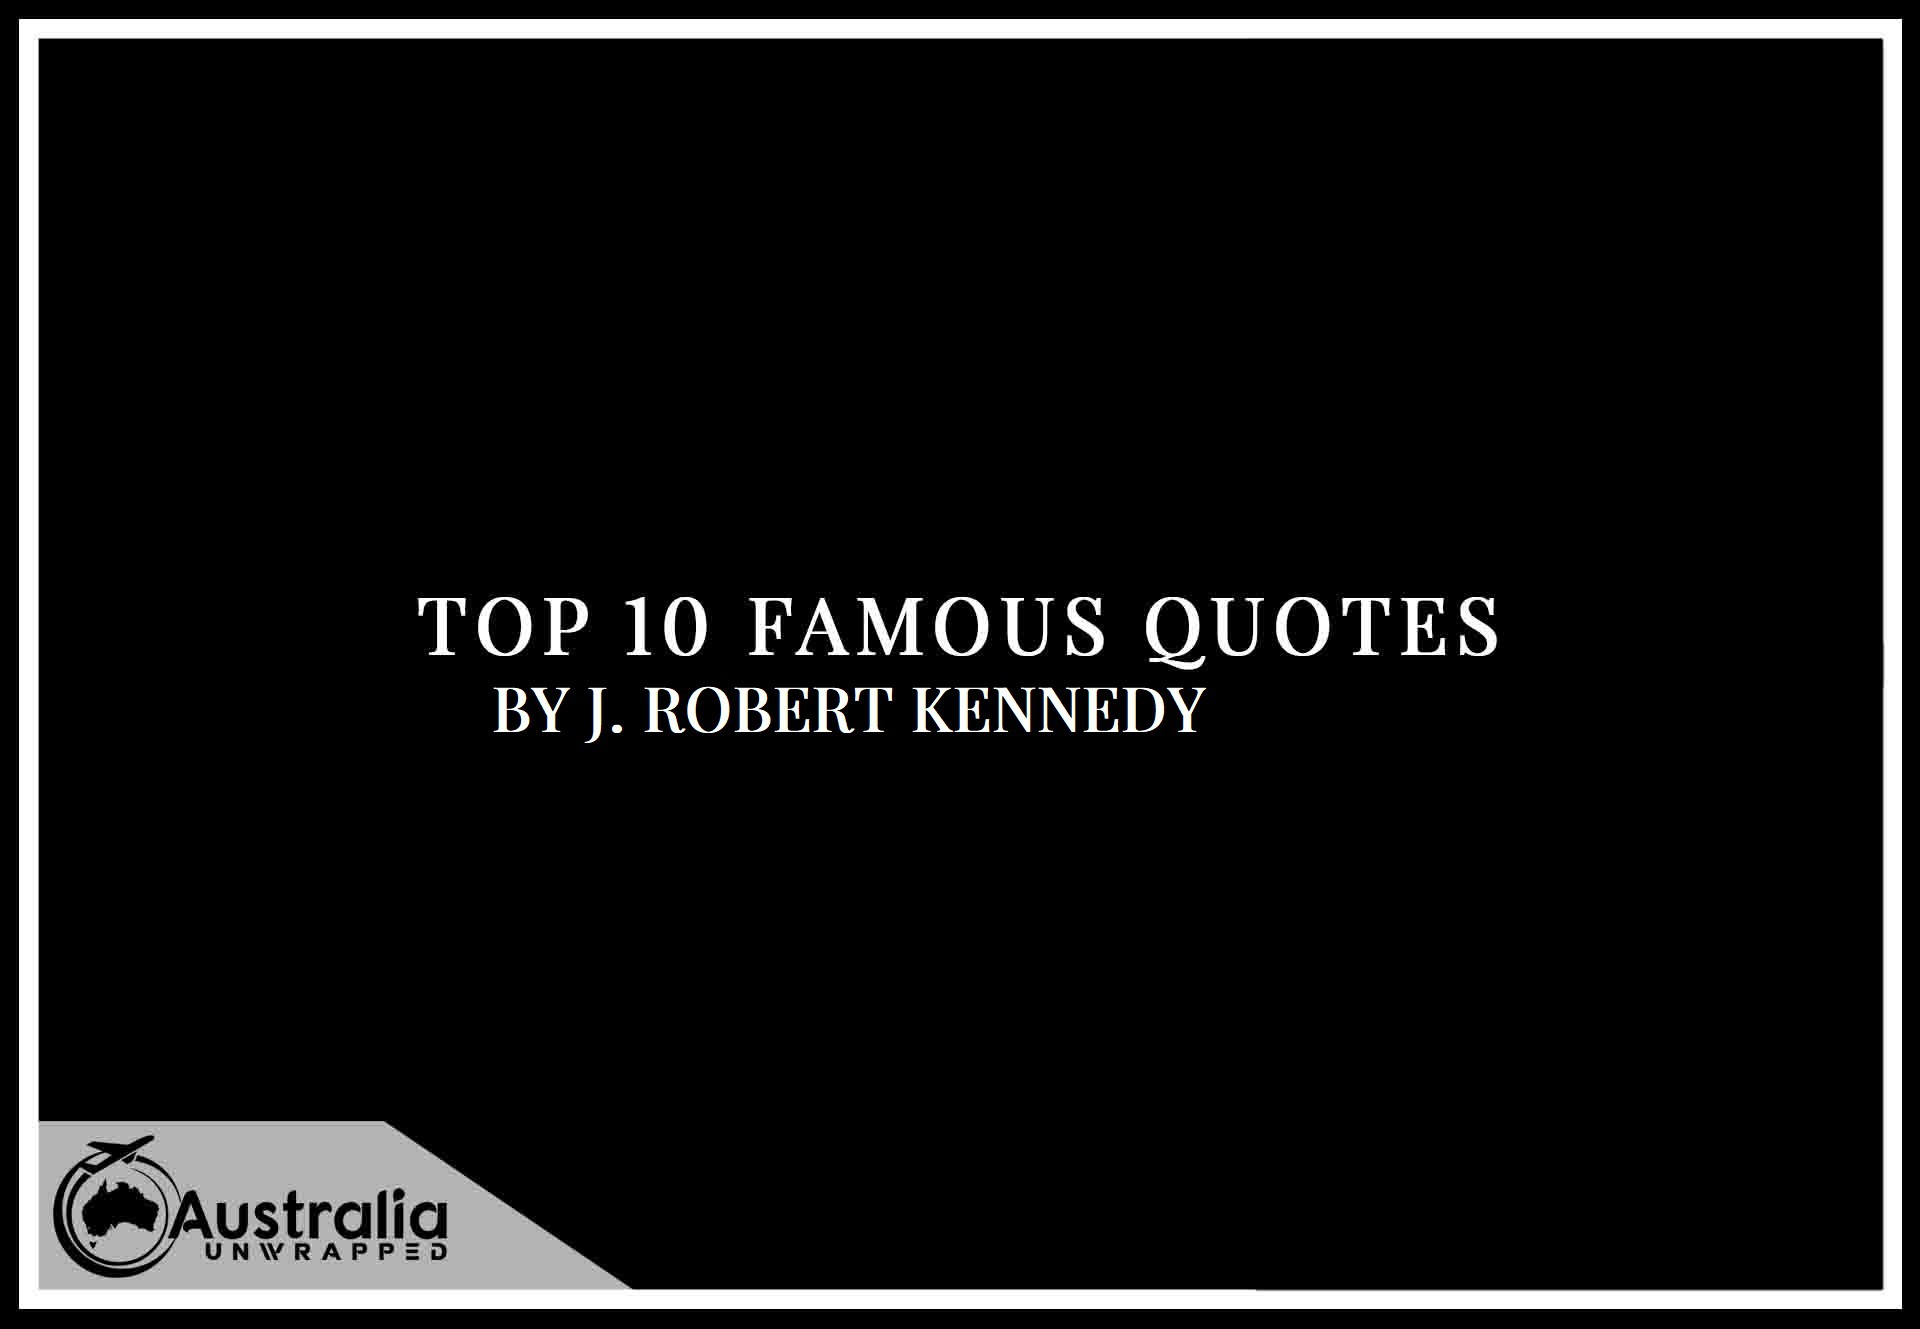 Top 10 Famous Quotes by Author J. Robert Kennedy